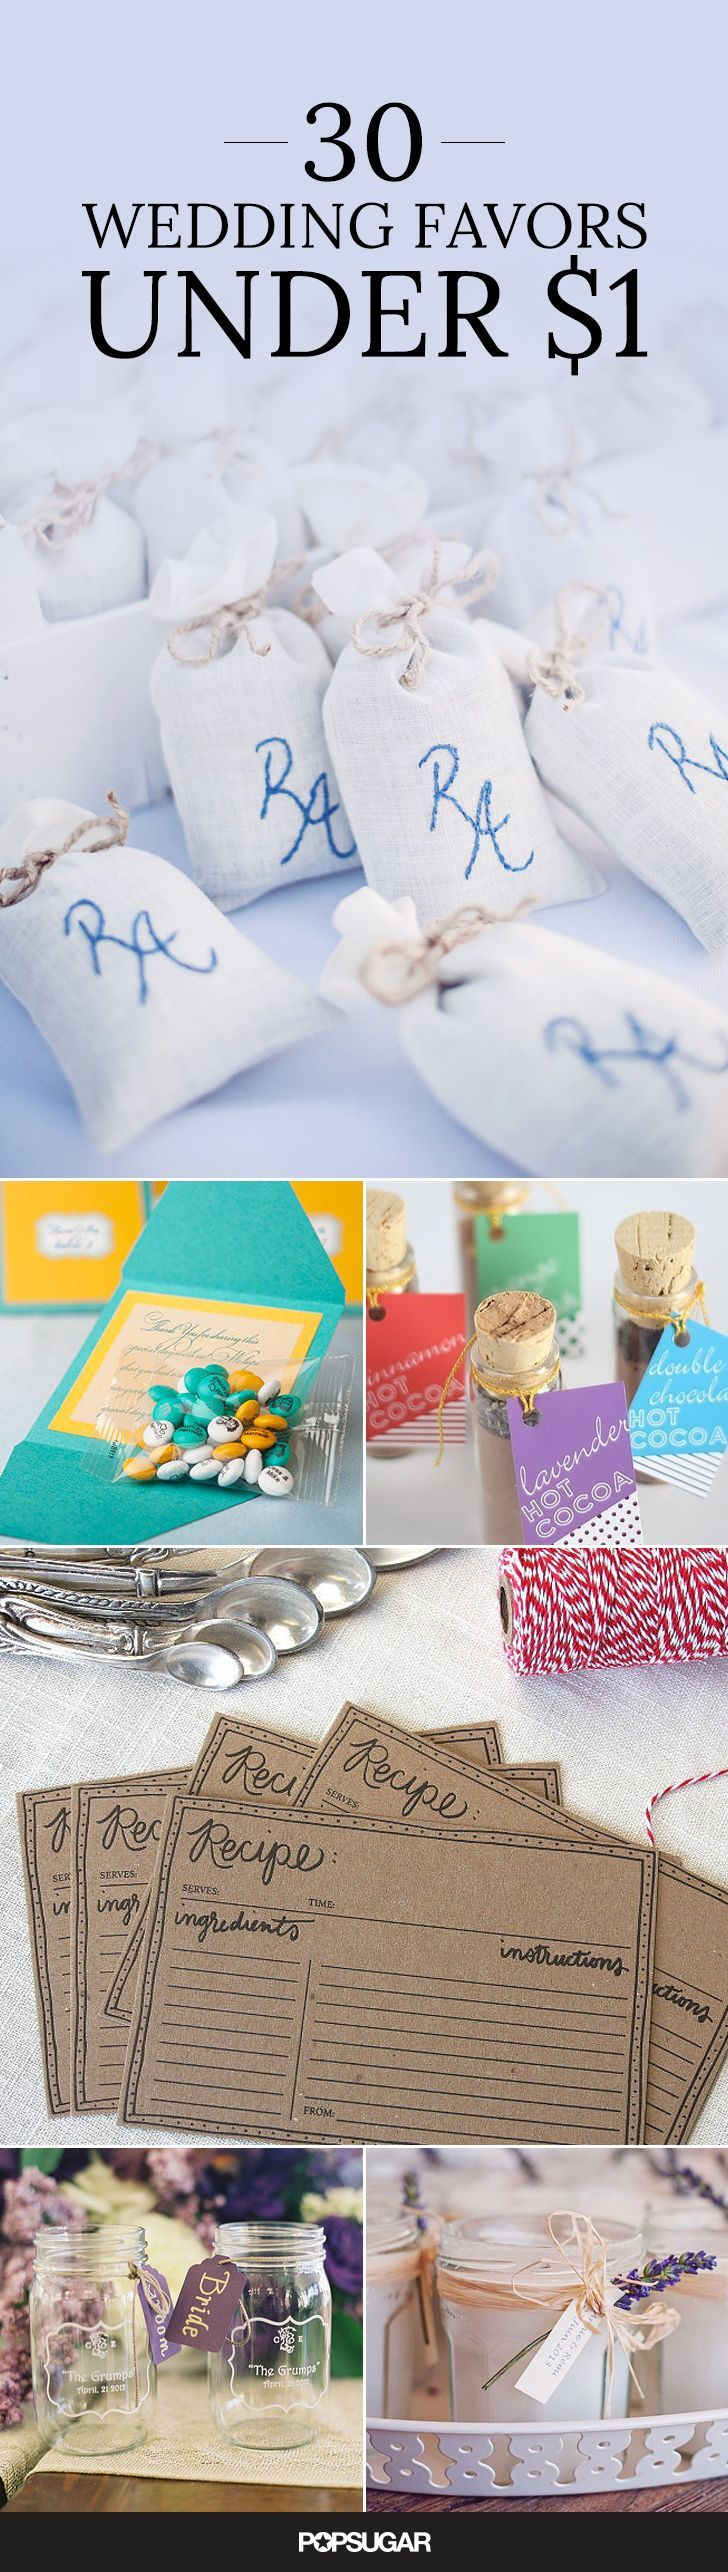 30 Wedding Favors You Won T Believe Cost Under 1 Diy Wedding Favors Inexpensive Wedding Favors Popcorn Wedding Favors